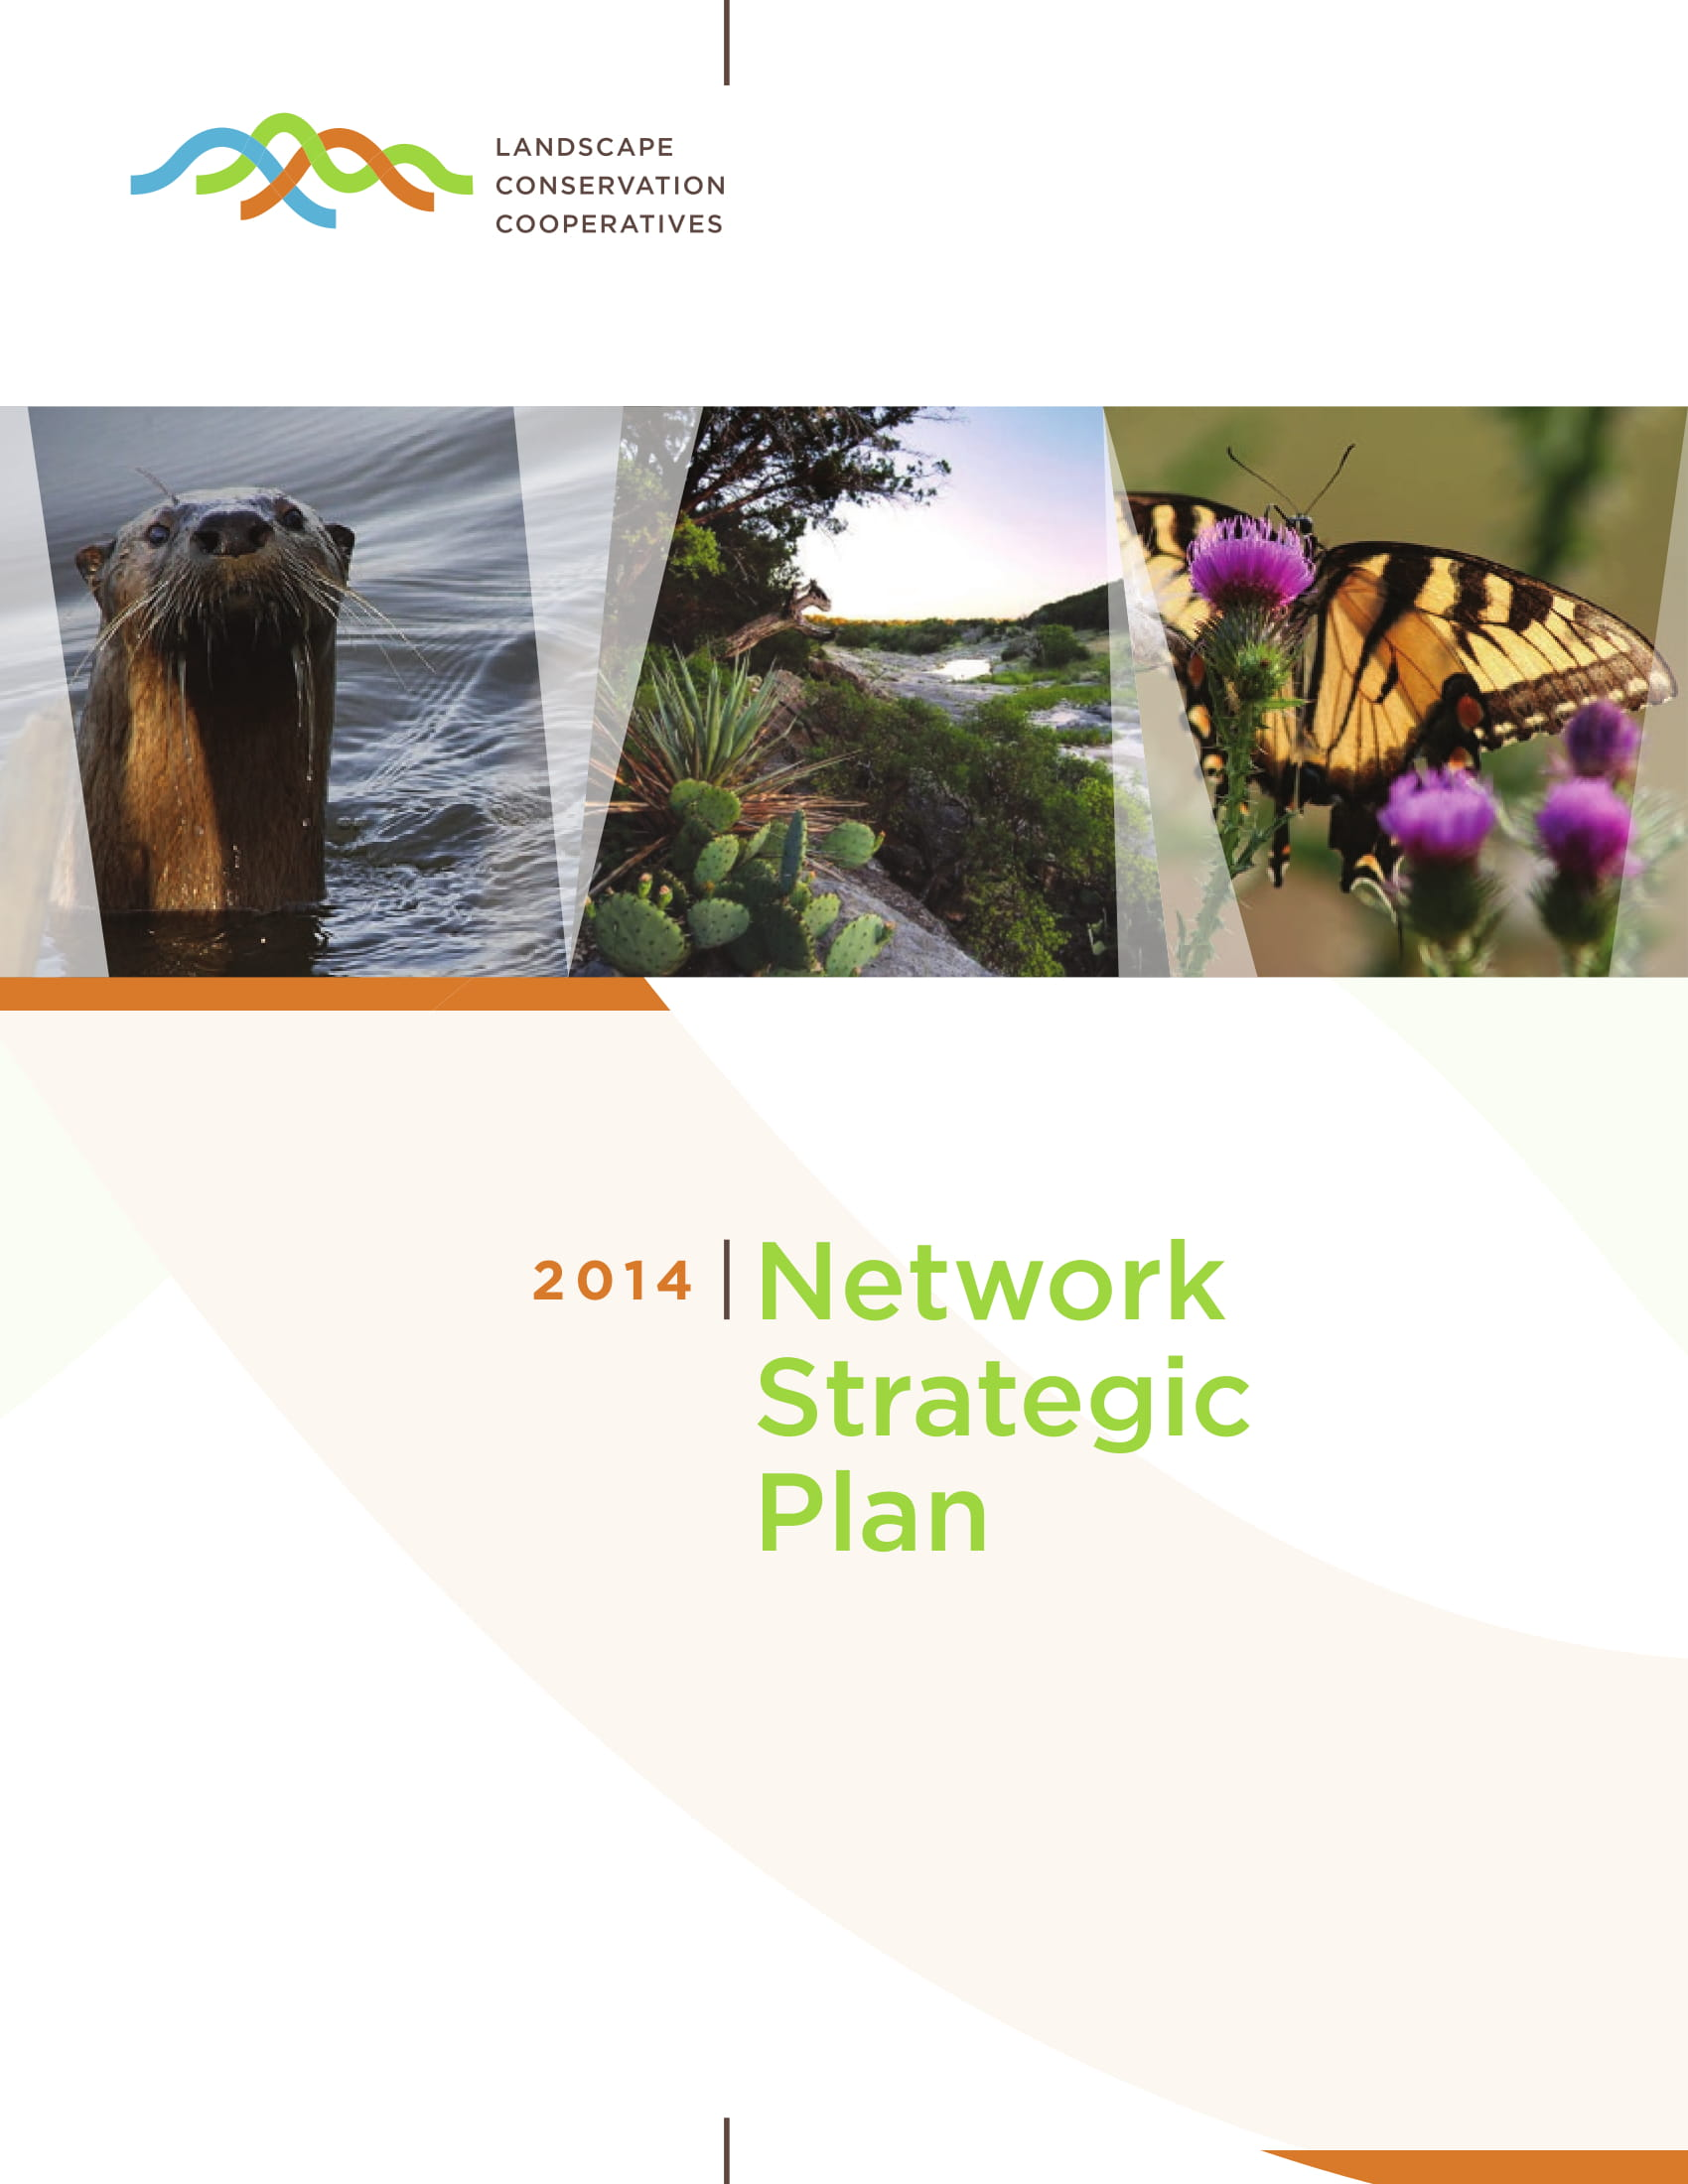 cooperatives network strategic plan example